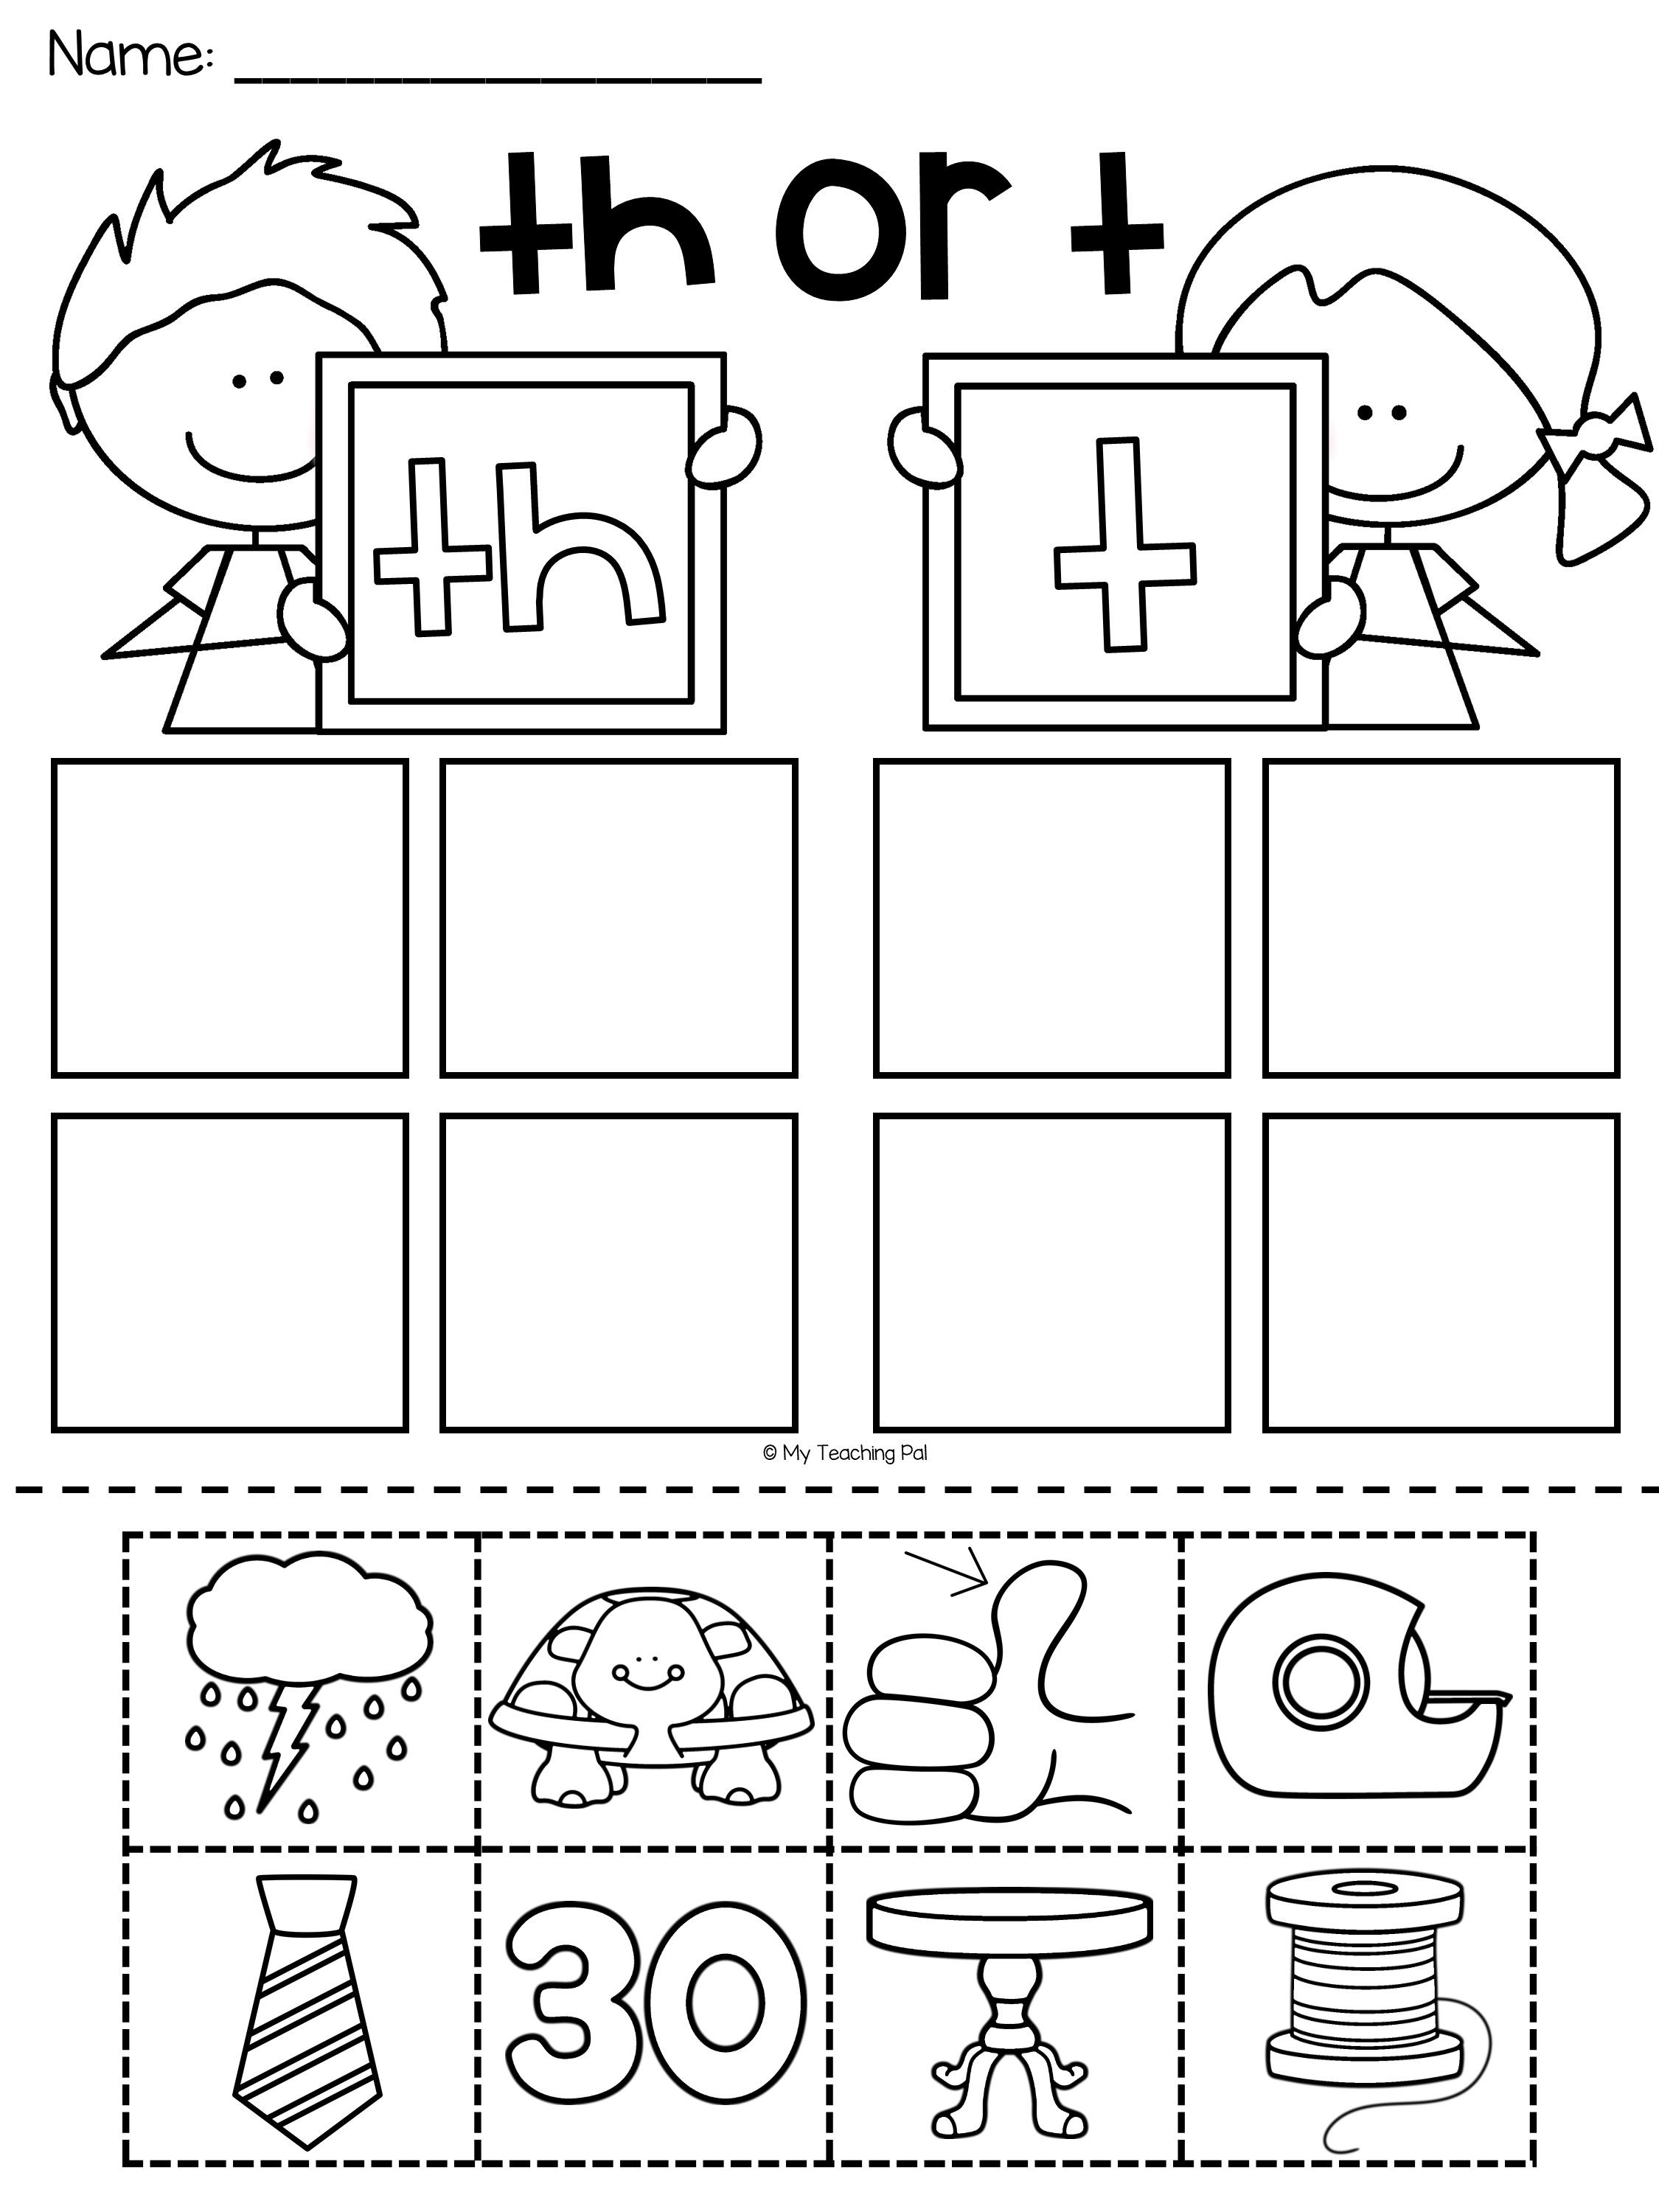 Th Worksheet Your Students Will Have So Much Fun Completing These Th Digraph Works Digraphs Worksheets Kindergarten Phonics Worksheets Kindergarten Worksheets